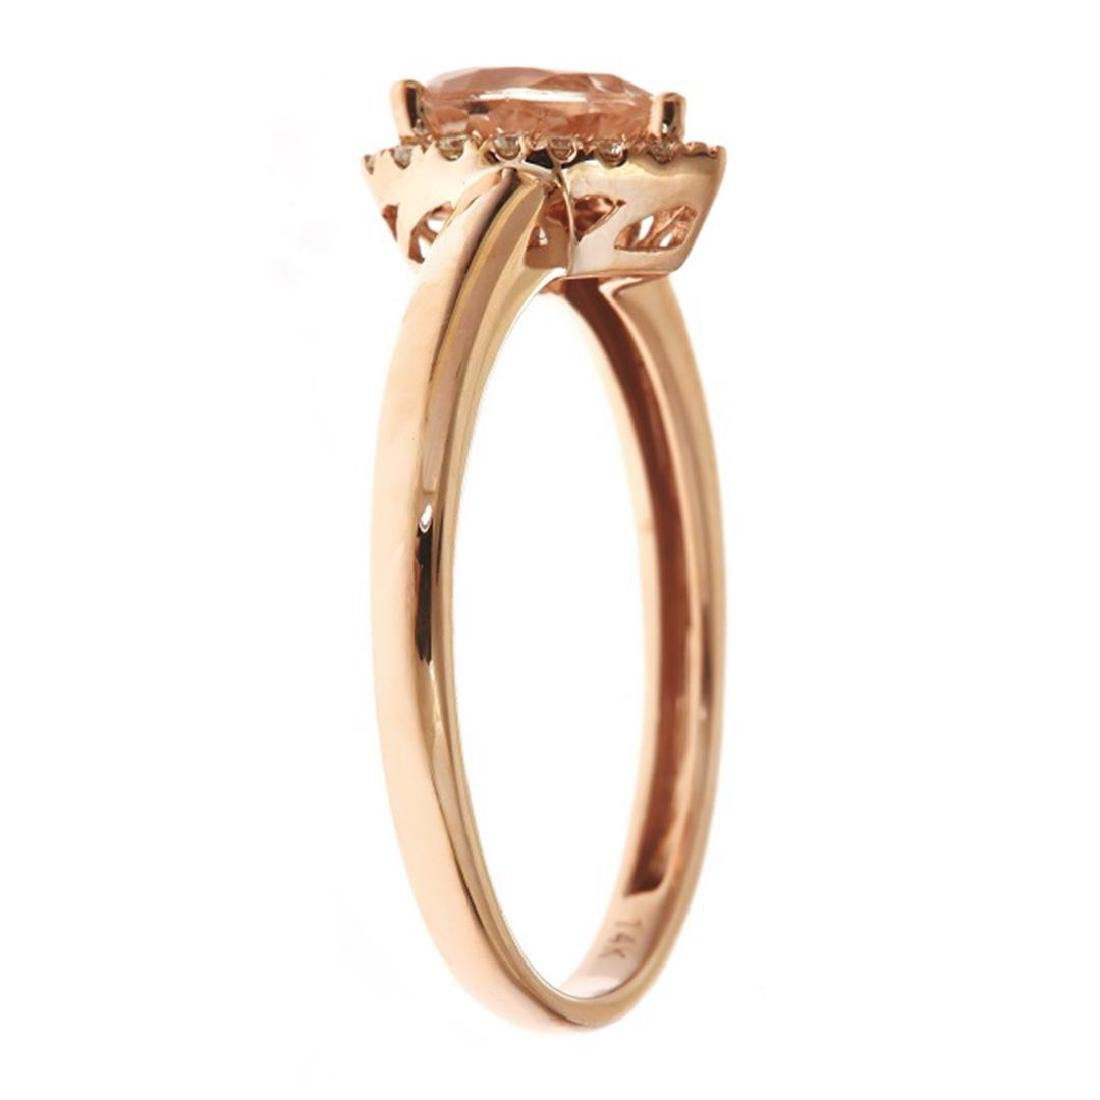 0.55 ctw Morganite and Diamond Ring - 14KT Rose Gold - 2